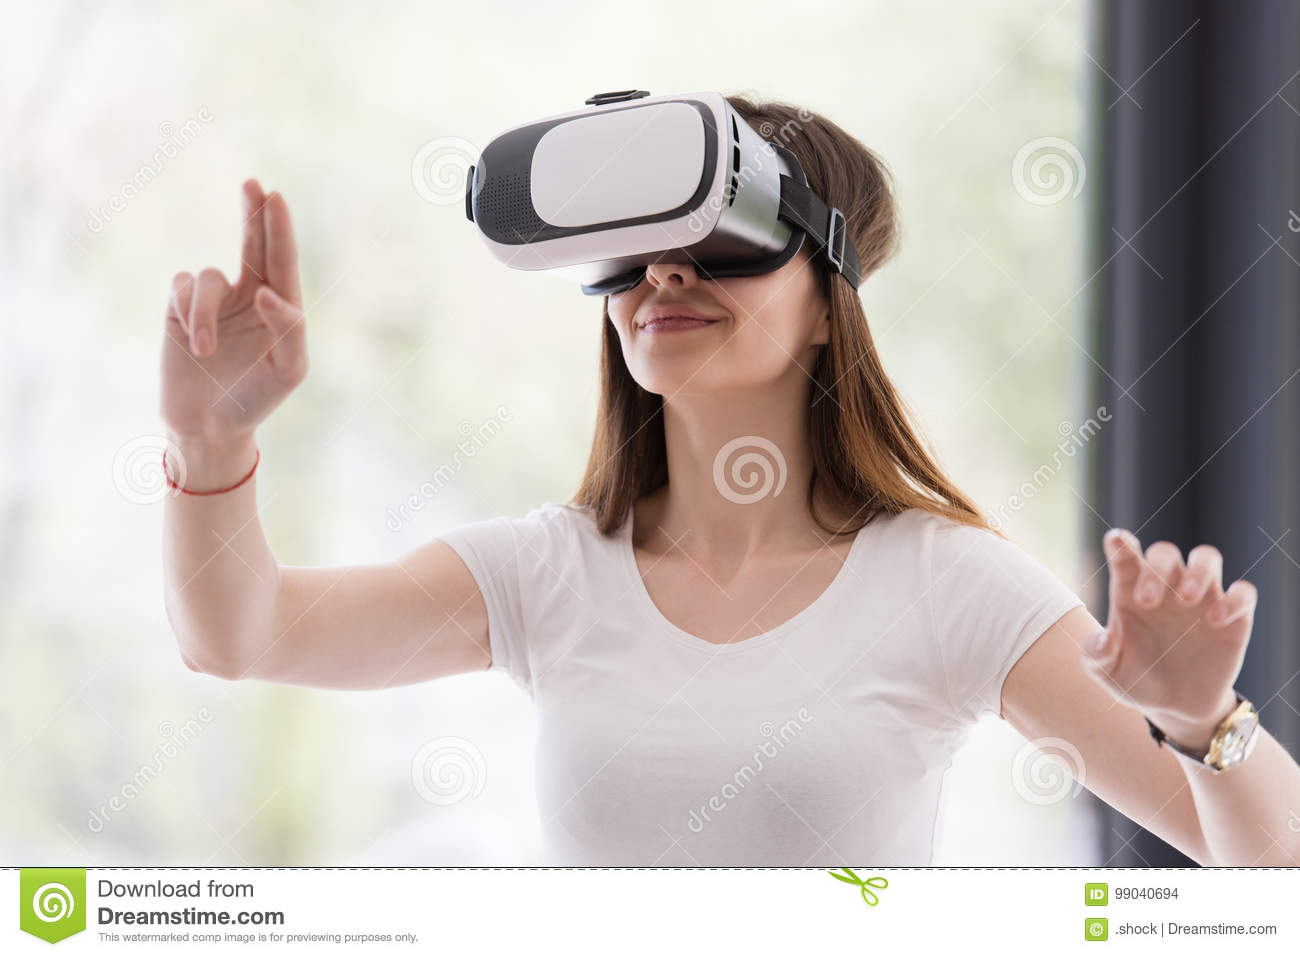 cdd744d837af Smile happy woman getting experience using VR-headset glasses of virtual  reality at home